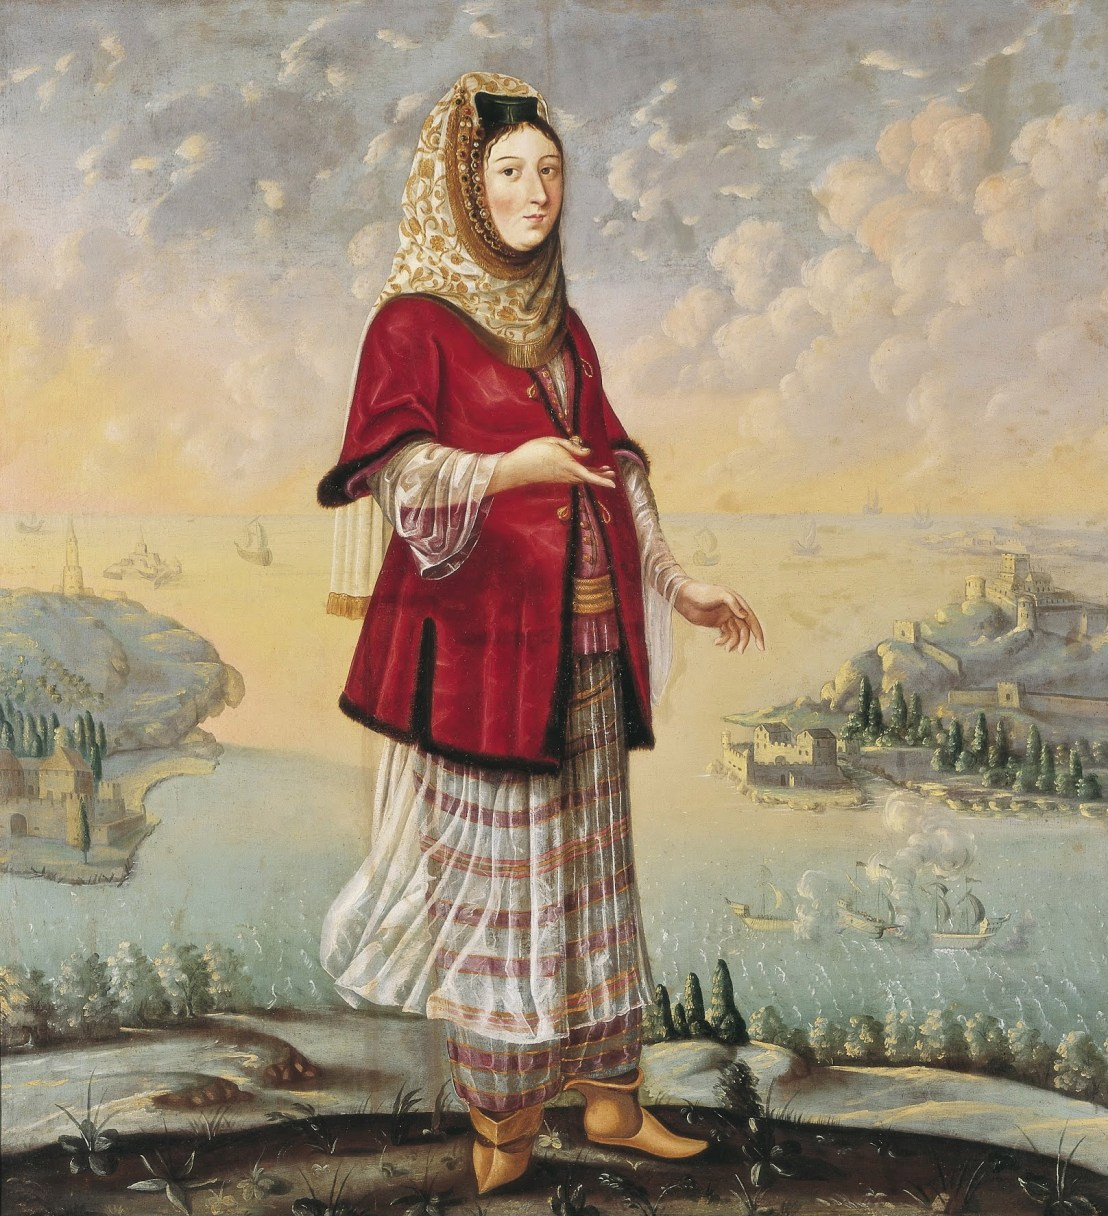 Armenian woman by Styrian painter Štajerski Slikar, 1682